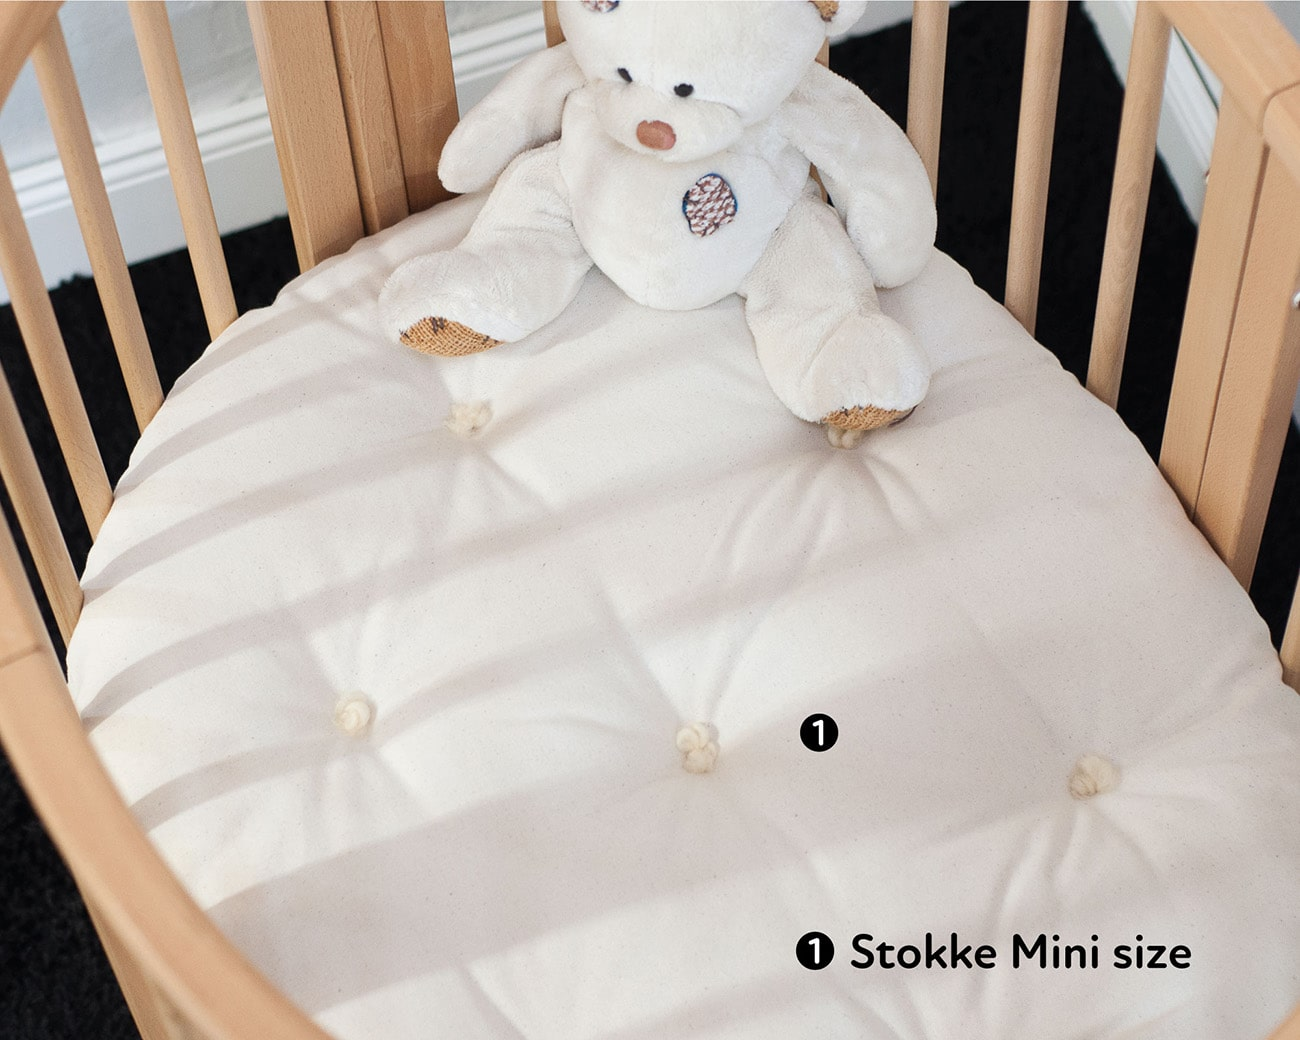 Crib Mattresses Crib Mattress Nursery Baby Breathable Waterproof Cradle Mattress 74 X 33 X 4 Cm